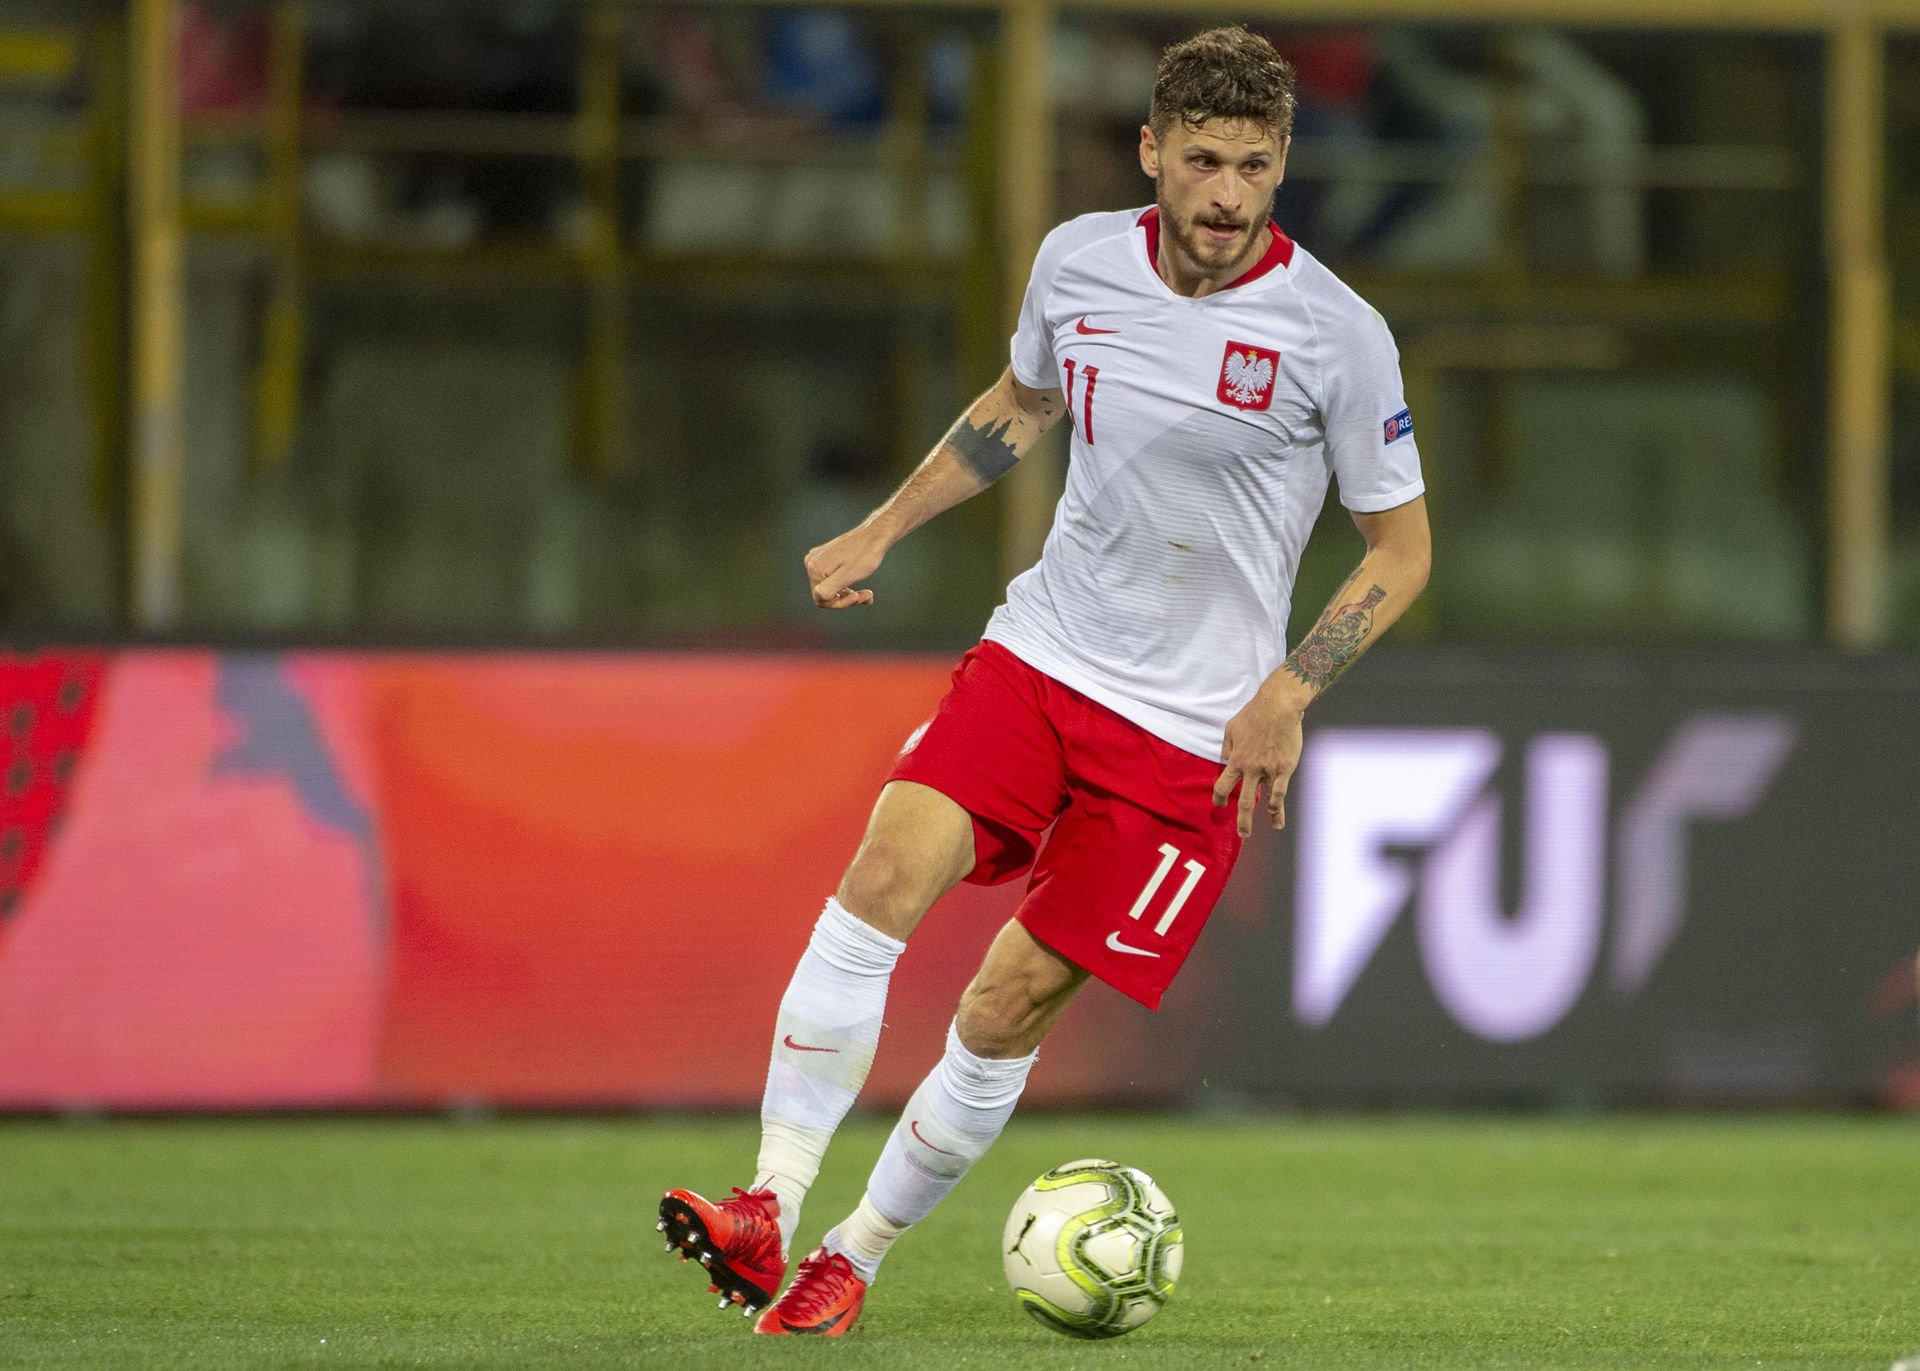 Leeds United star, Mateusz Klich tests positive for coronavirus, ruling him out of Poland